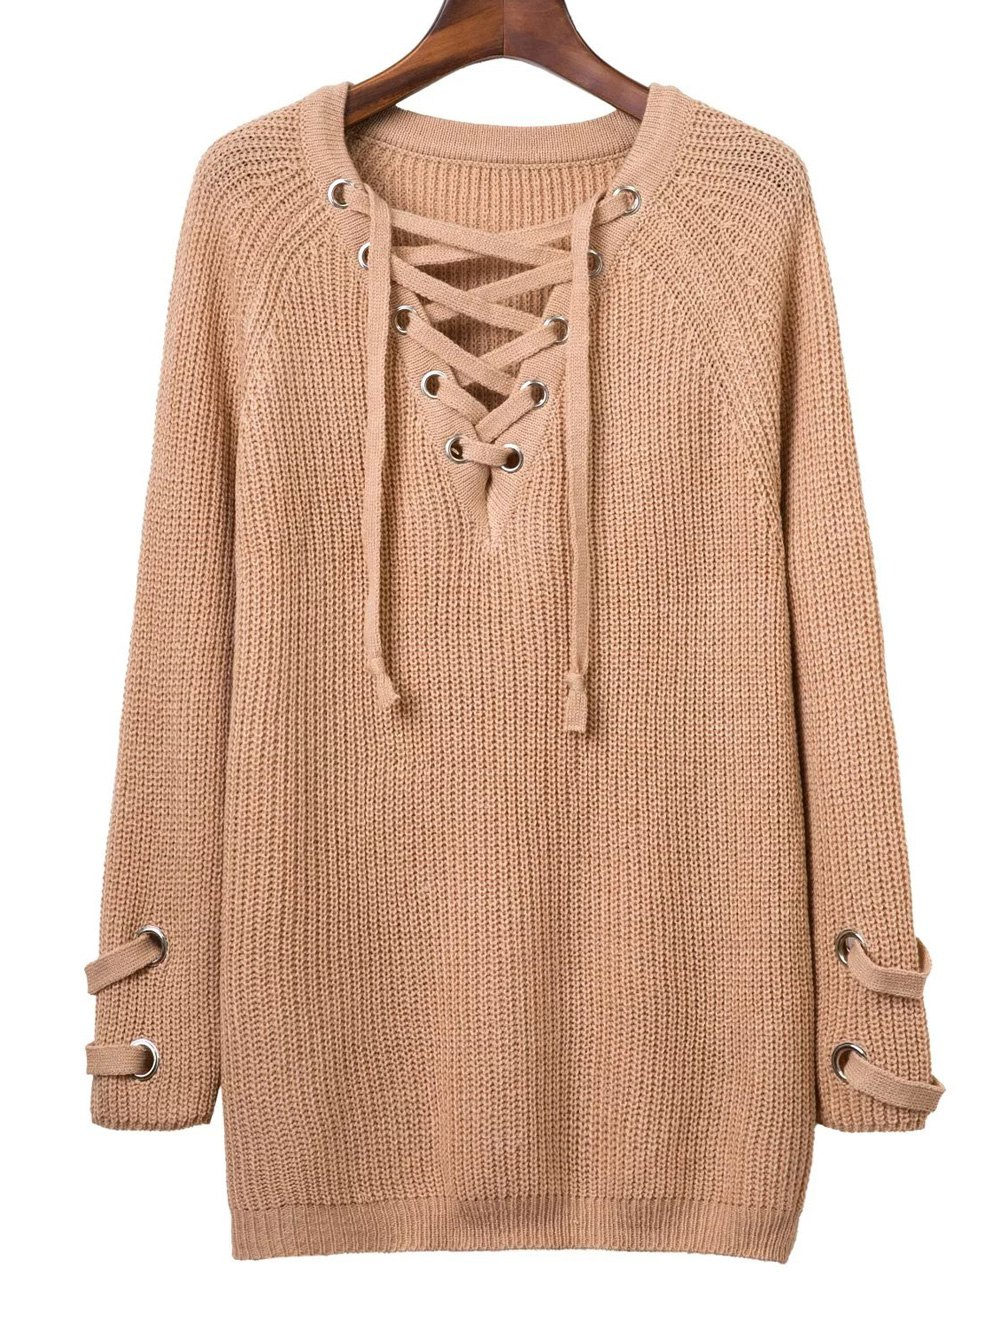 V Neck Long Sleeve Lace Up Solid Color Sweater